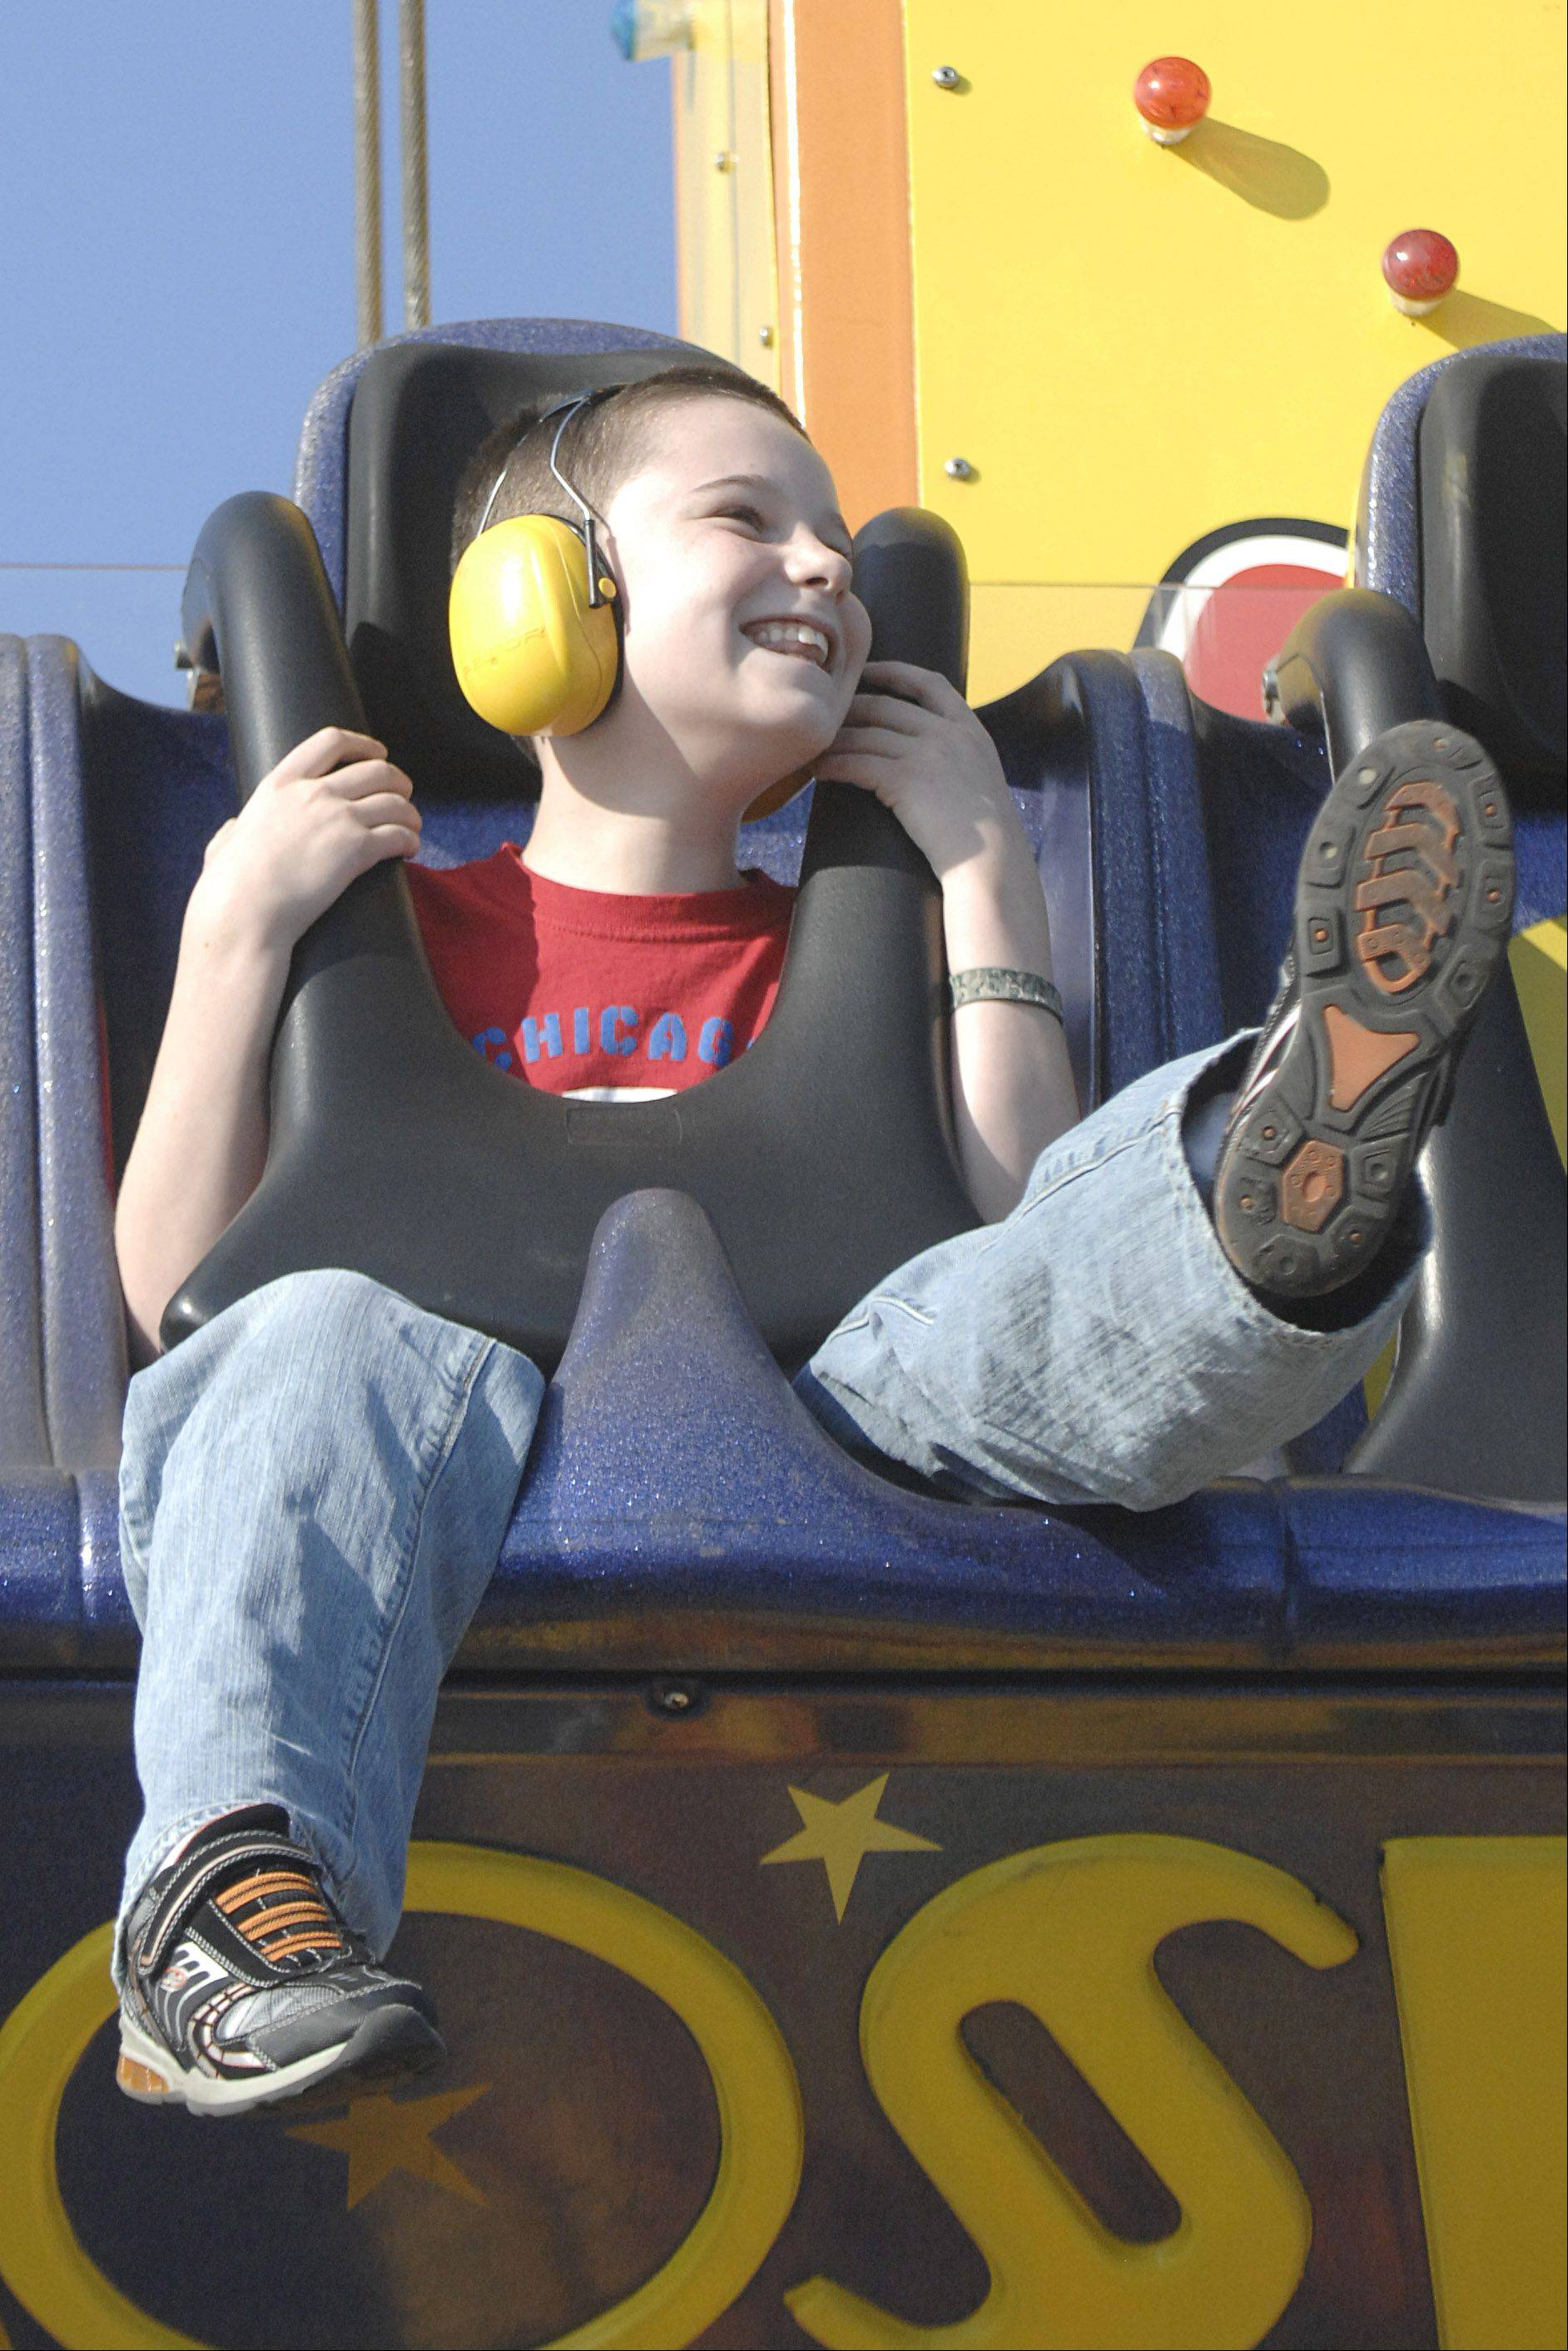 Jason Kelly, 11, of Schaumburg kicks his heels in the air with excitement while in a downward plunge on the Freefall ride at the Huntley Fall Fest carnival on Friday, September 28. Jason's mom, Jill, says he's a fan of roller coasters, too. An hour was put aside for 15 families with special needs children who preregistered to have a chance to enjoy rides for free.